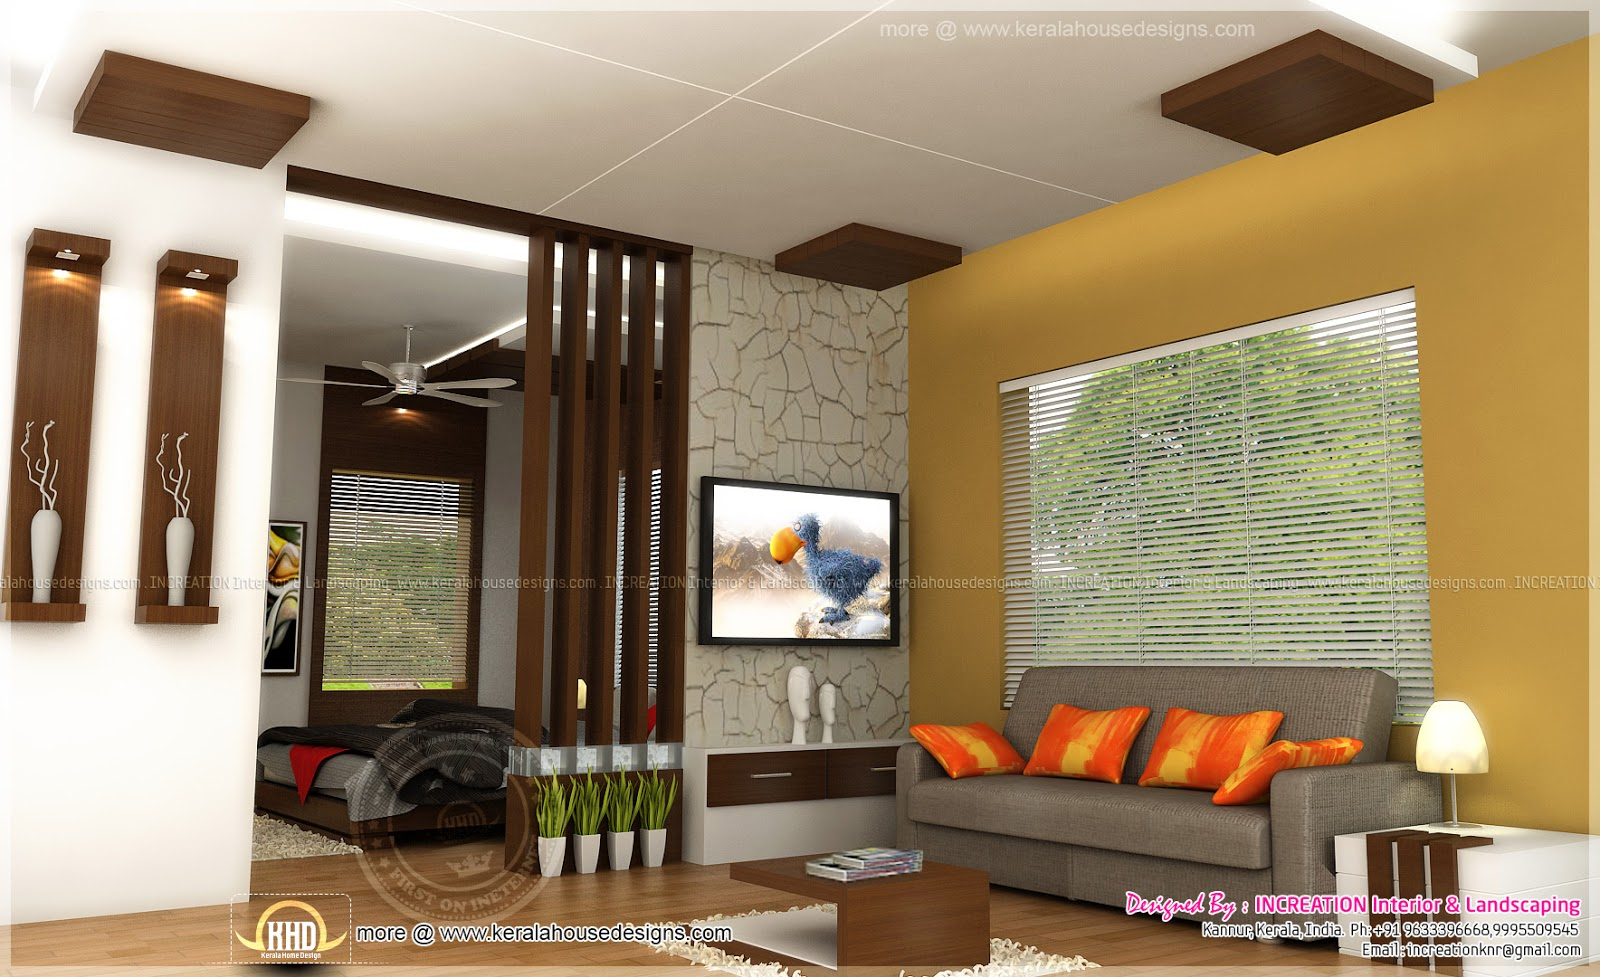 Interior designs from kannur kerala home kerala plans for Living room interior